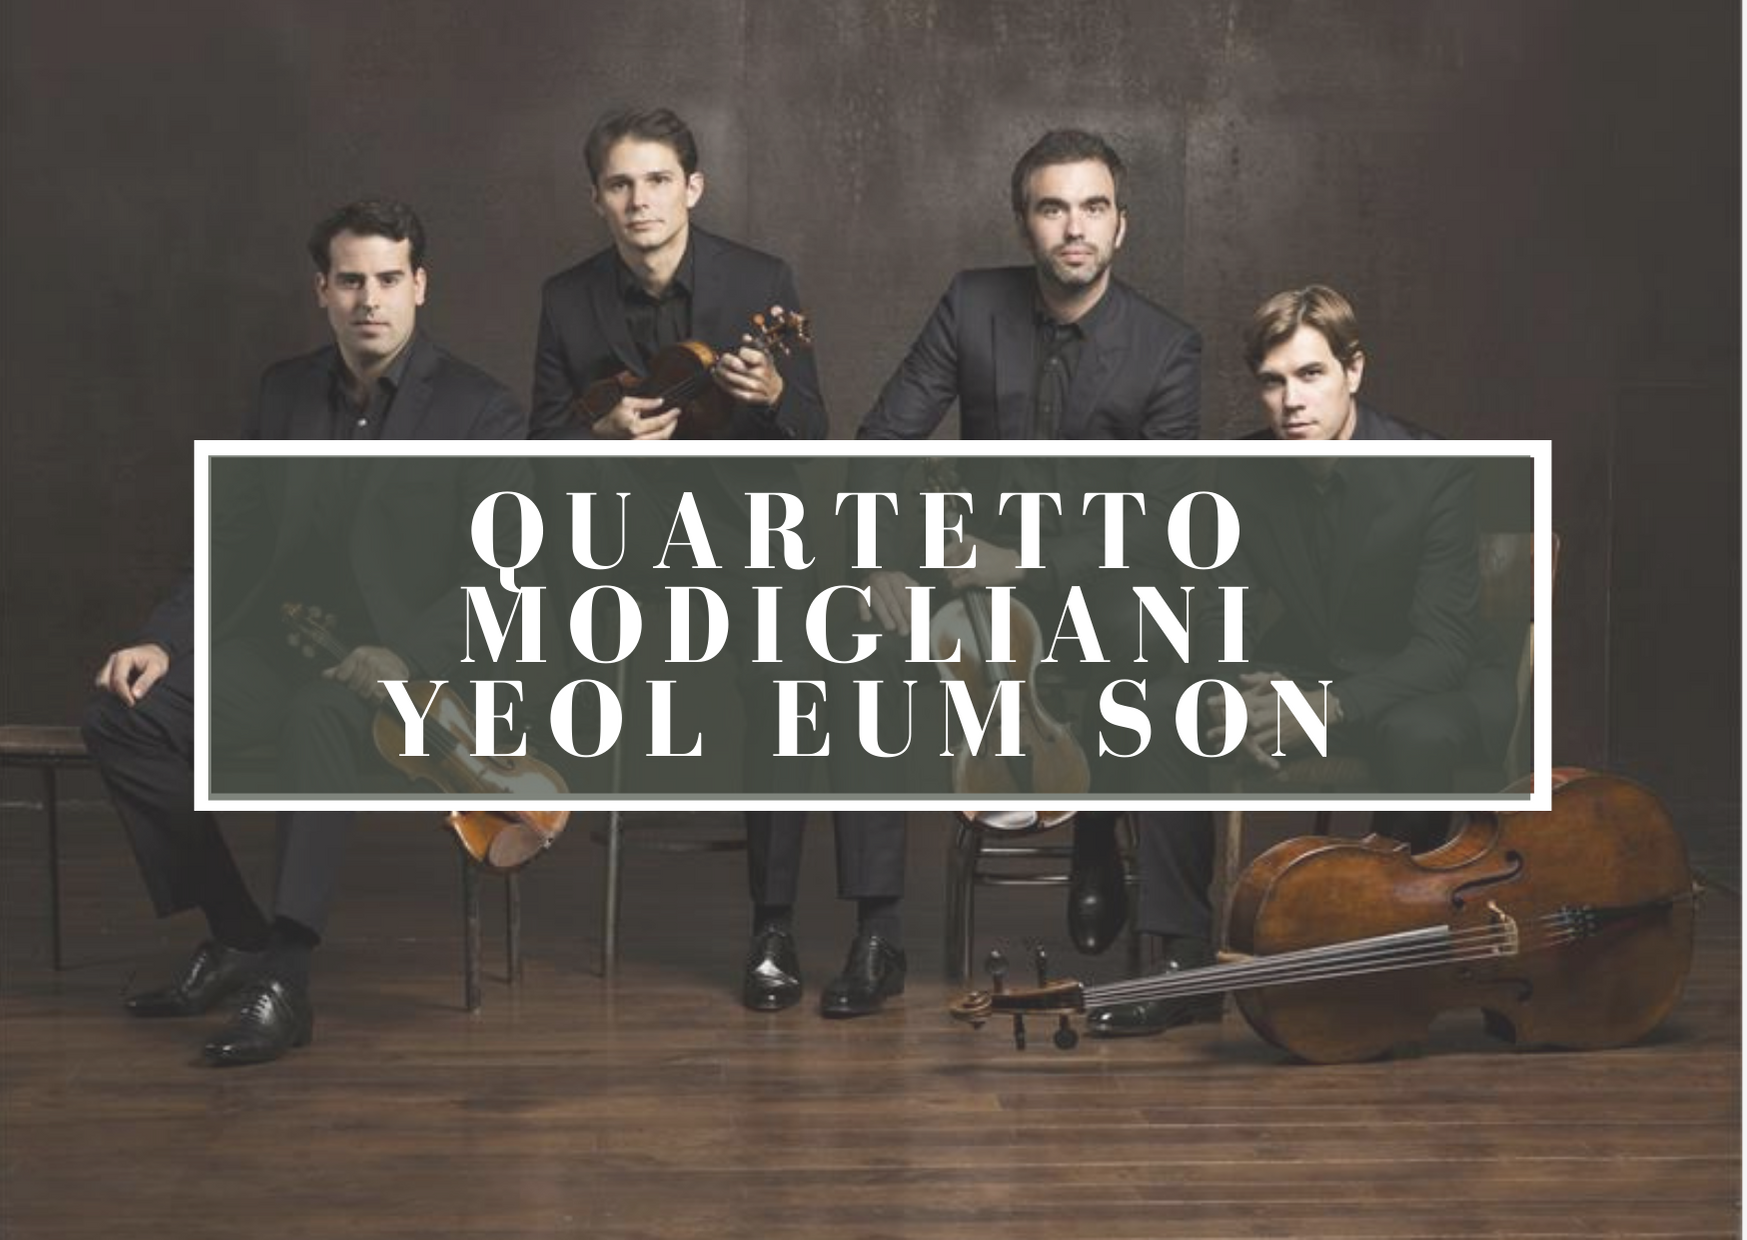 Video del Quartetto Modigliani con la pianista Yeol Eum Son